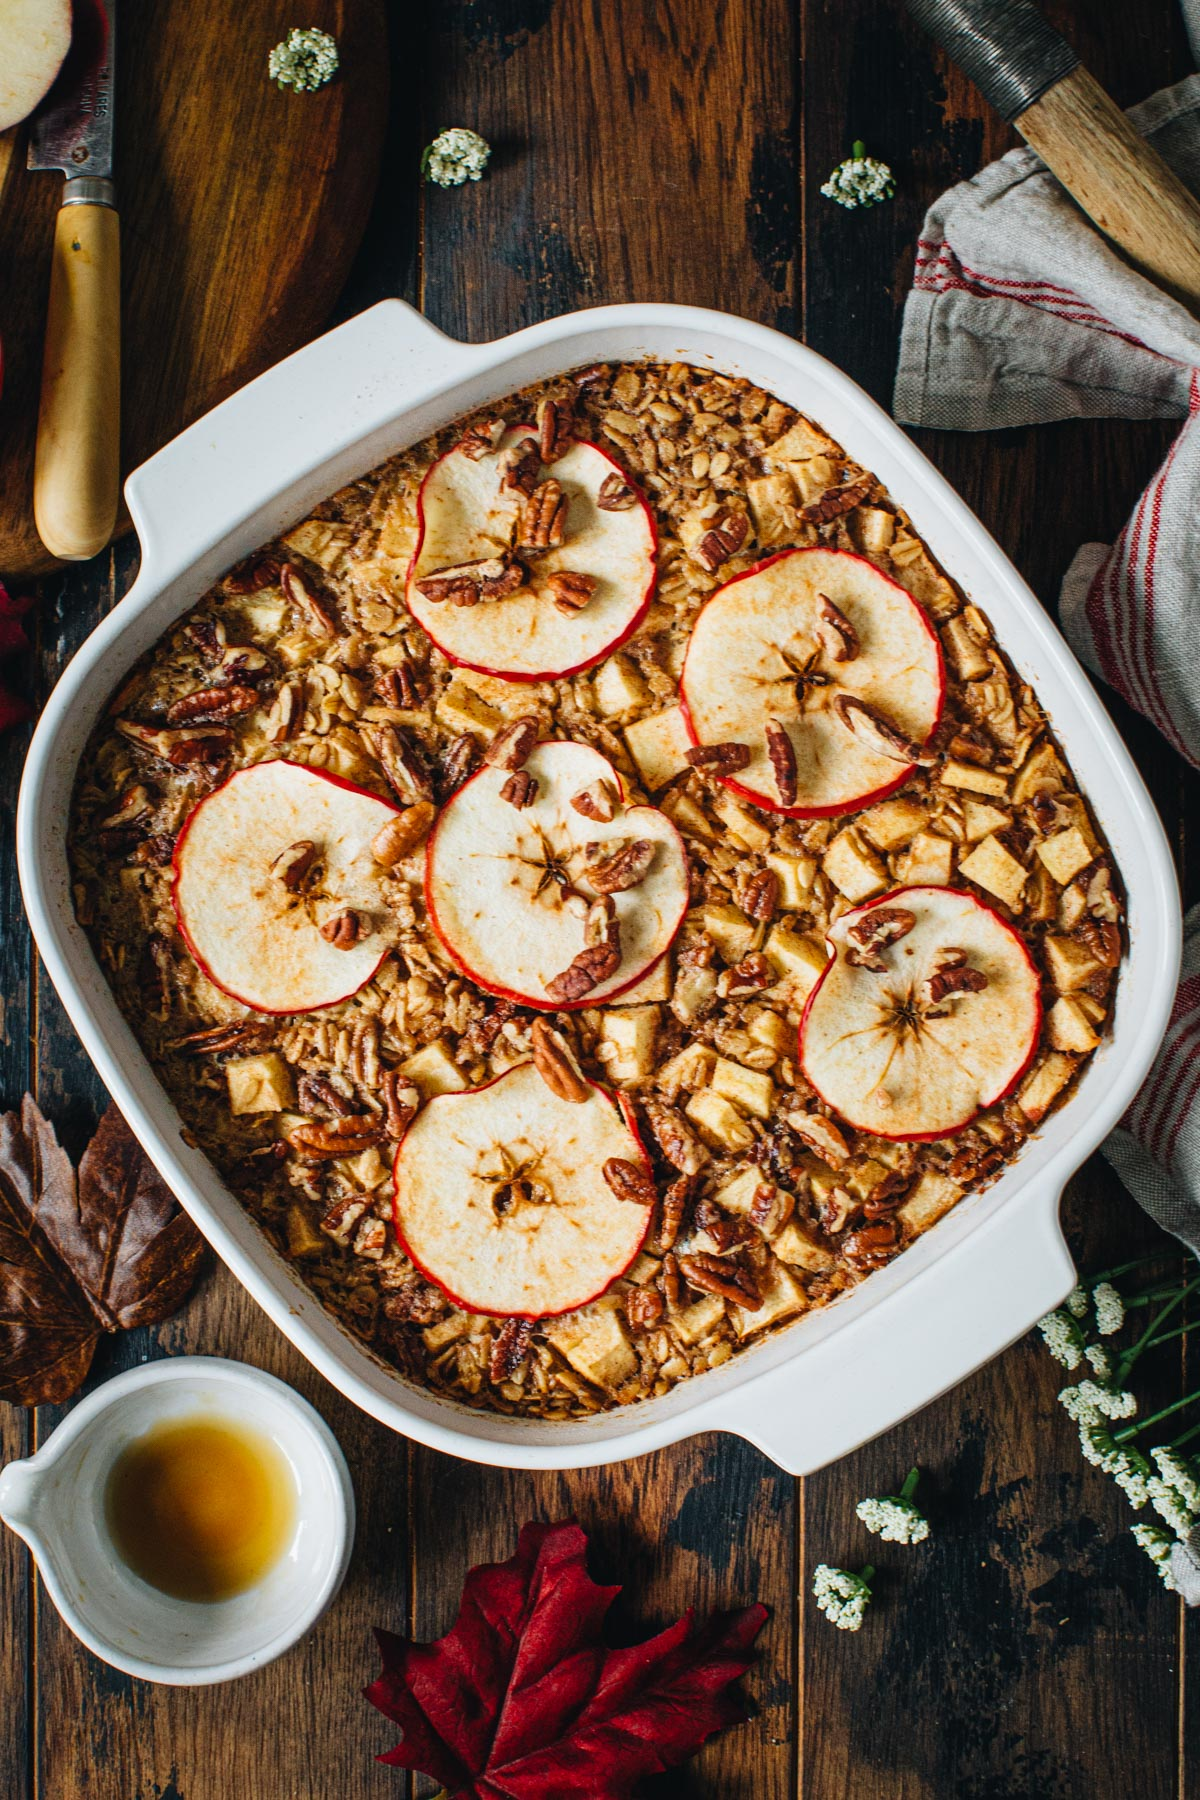 Baked apple oatmeal topped with pecans and apple slices in a square baking dish.